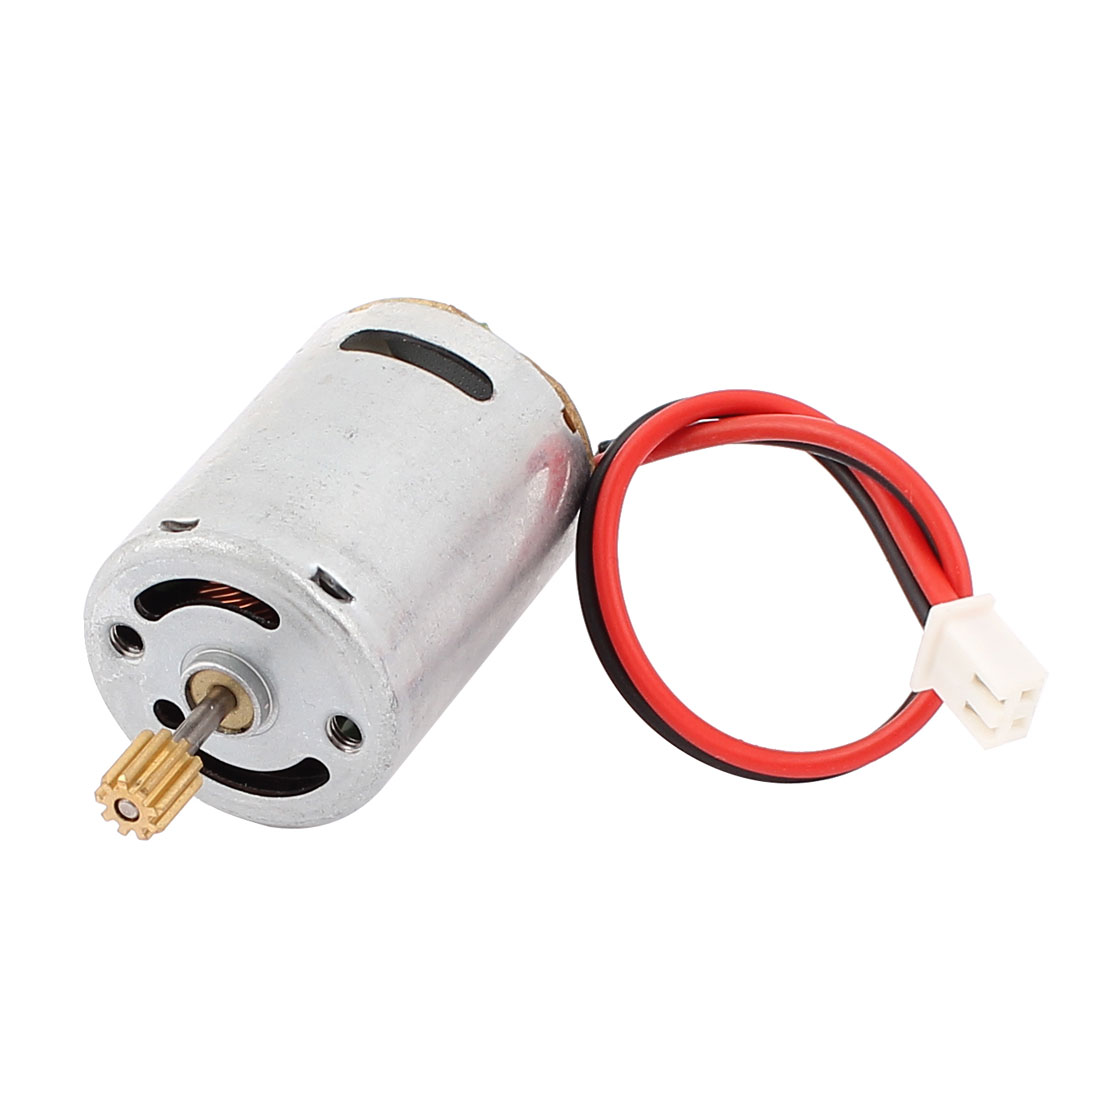 DC 7.4V 31800RPM RC Hobby Plane High Speed Magnetic Micro Motor